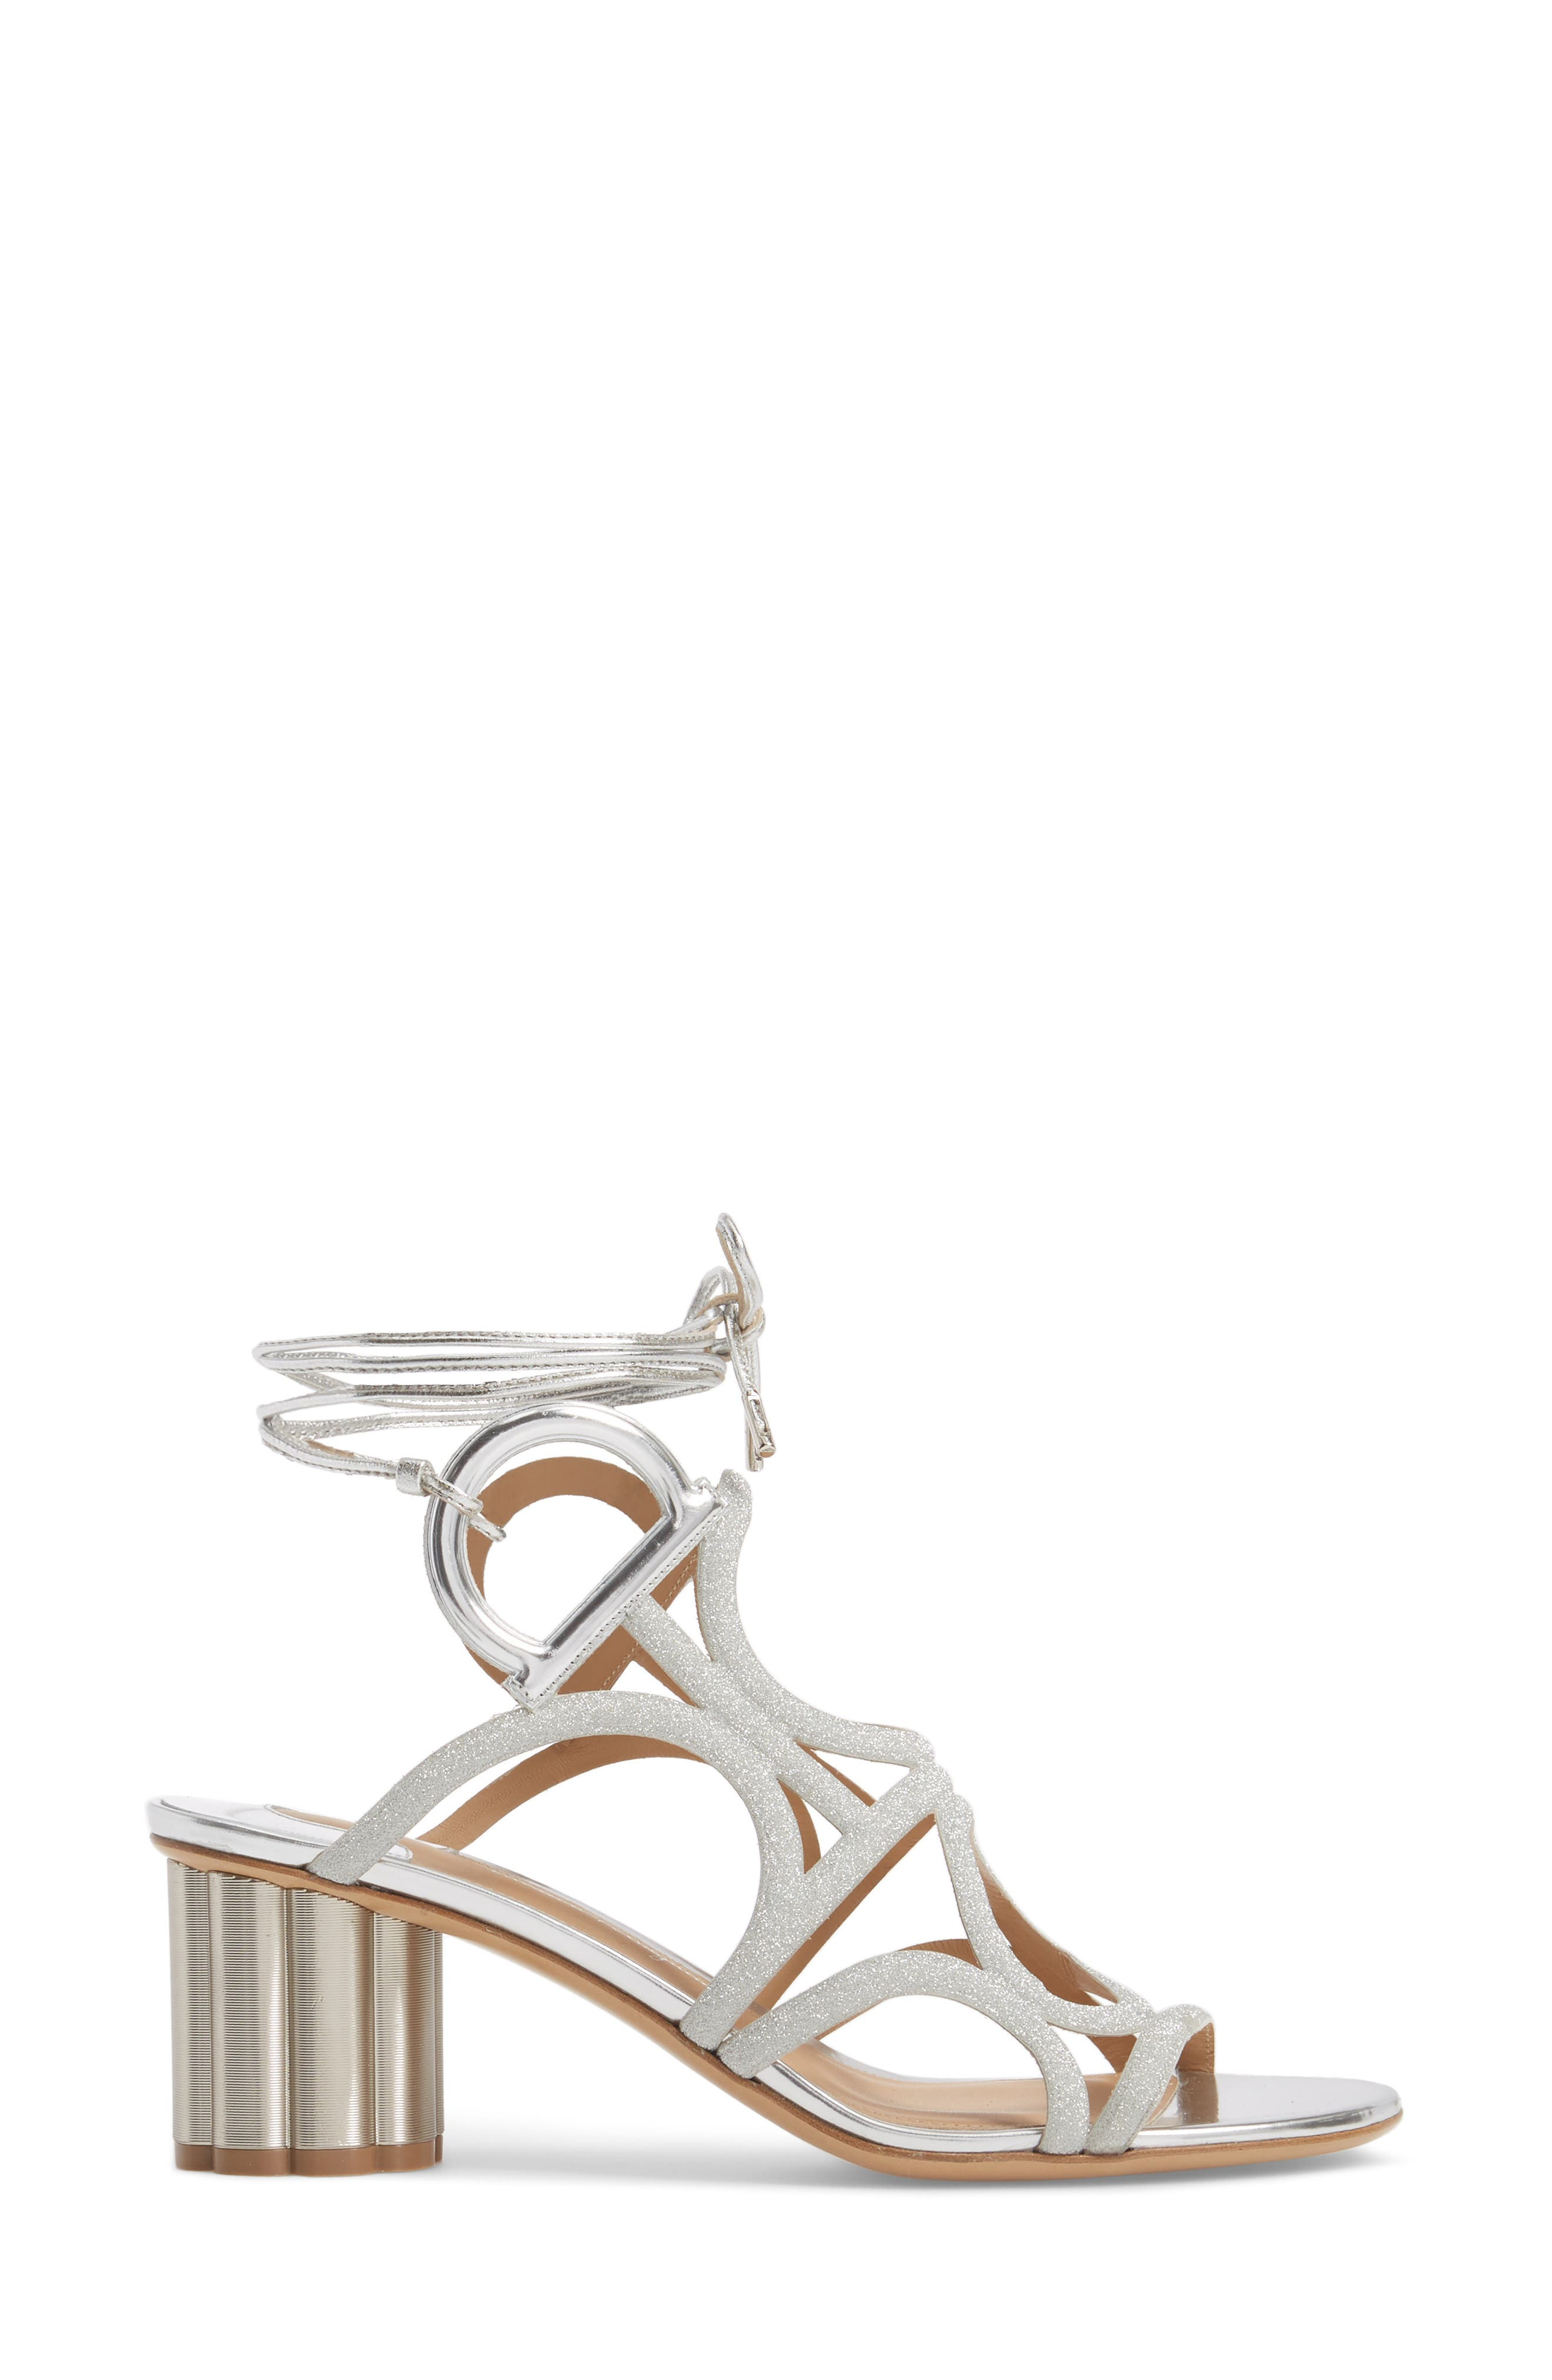 Vinci Lace-Up Block Heel Sandal,                             Alternate thumbnail 3, color,                             SILVER